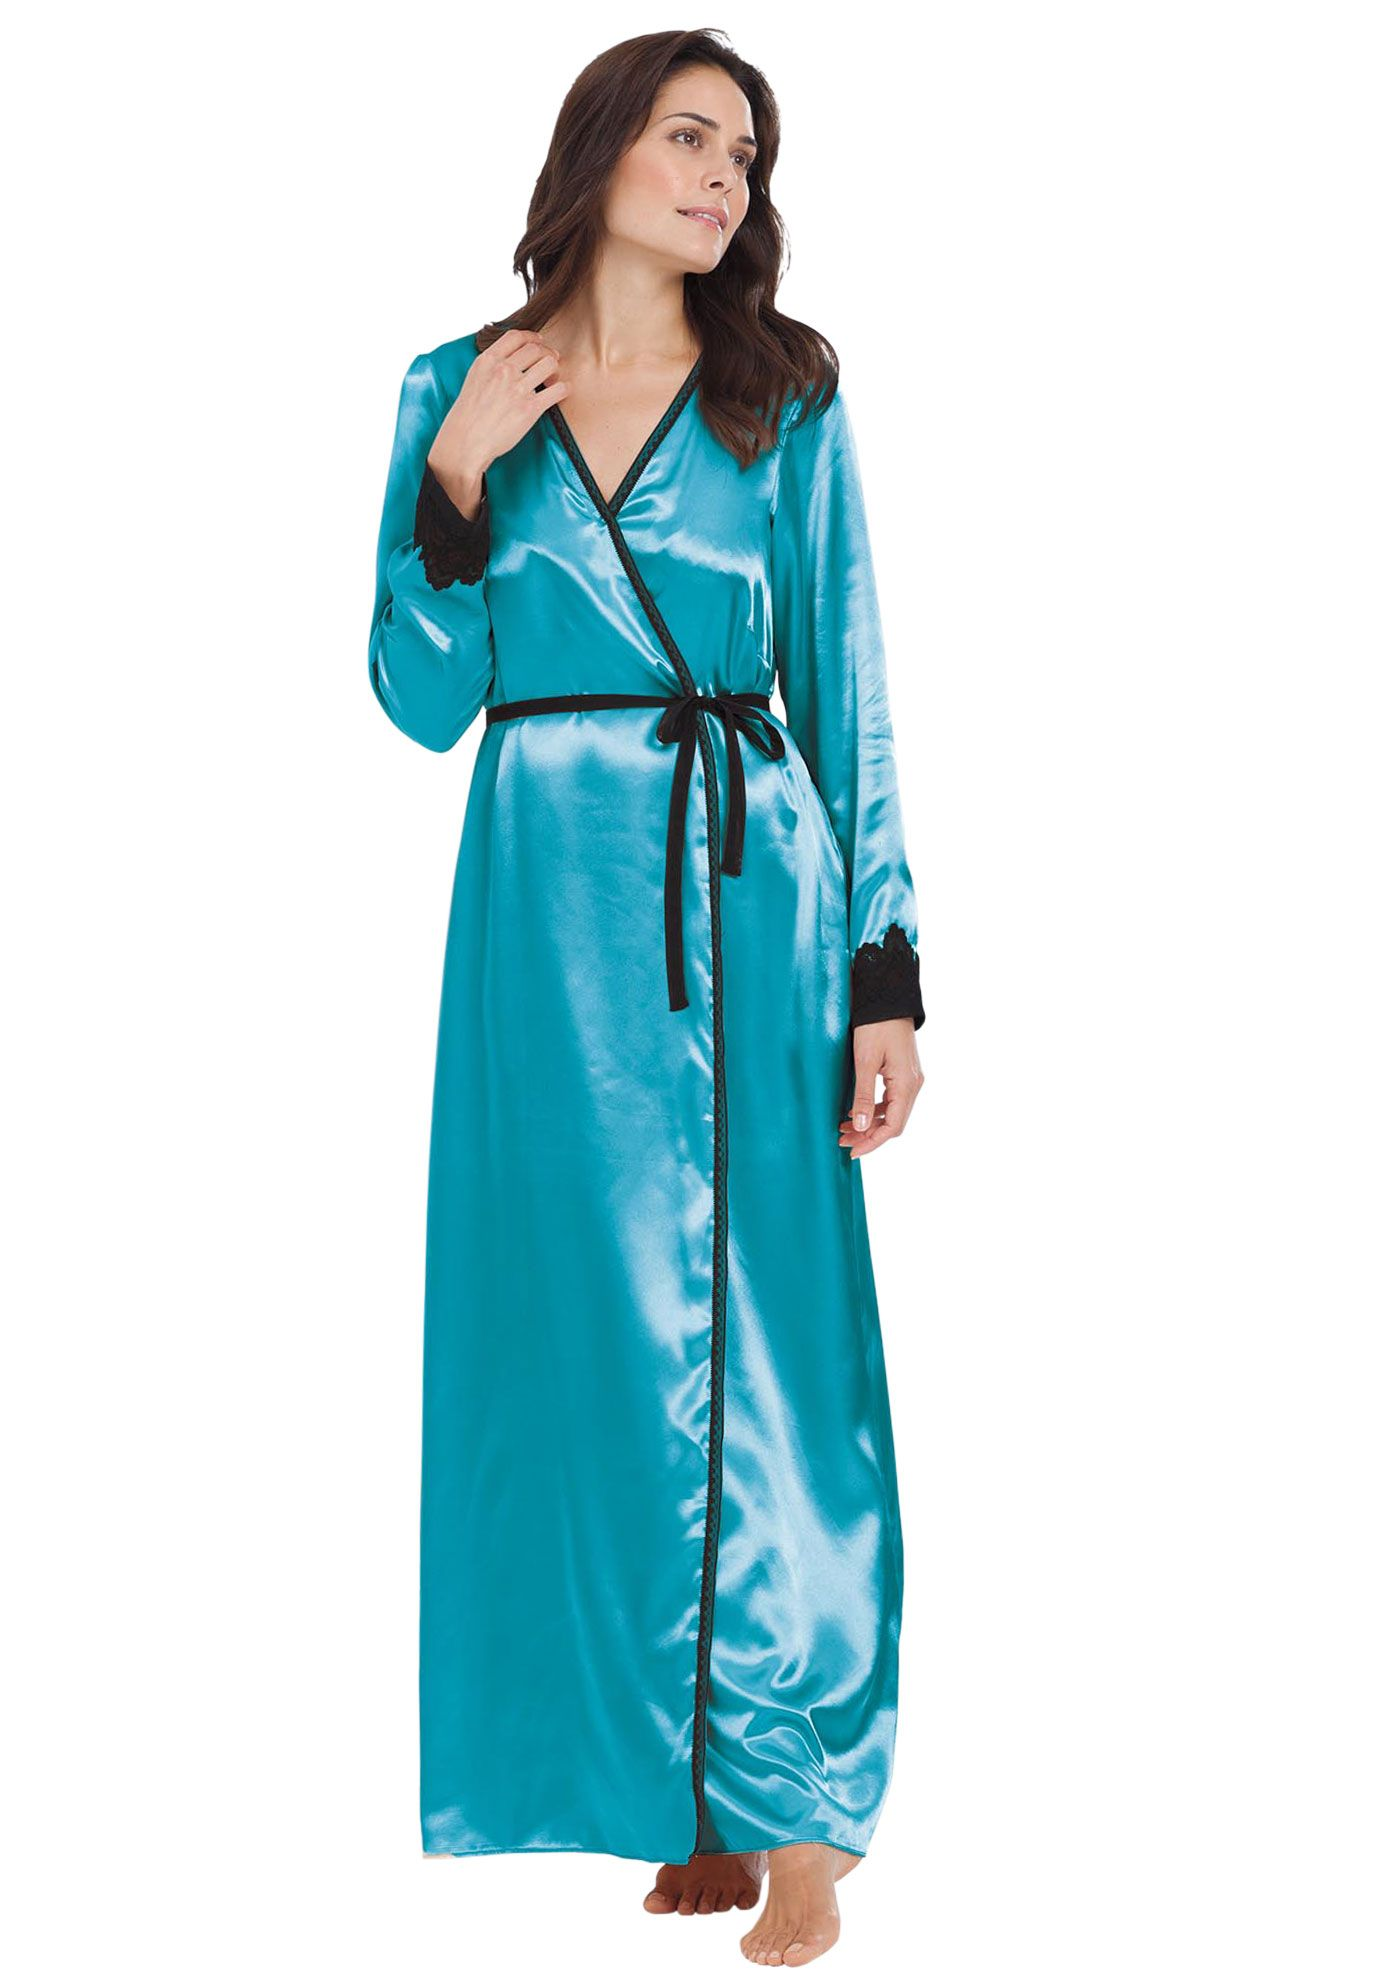 b6a14e98e6 Plus Size Robe for lounging in satin by Amoureuse®